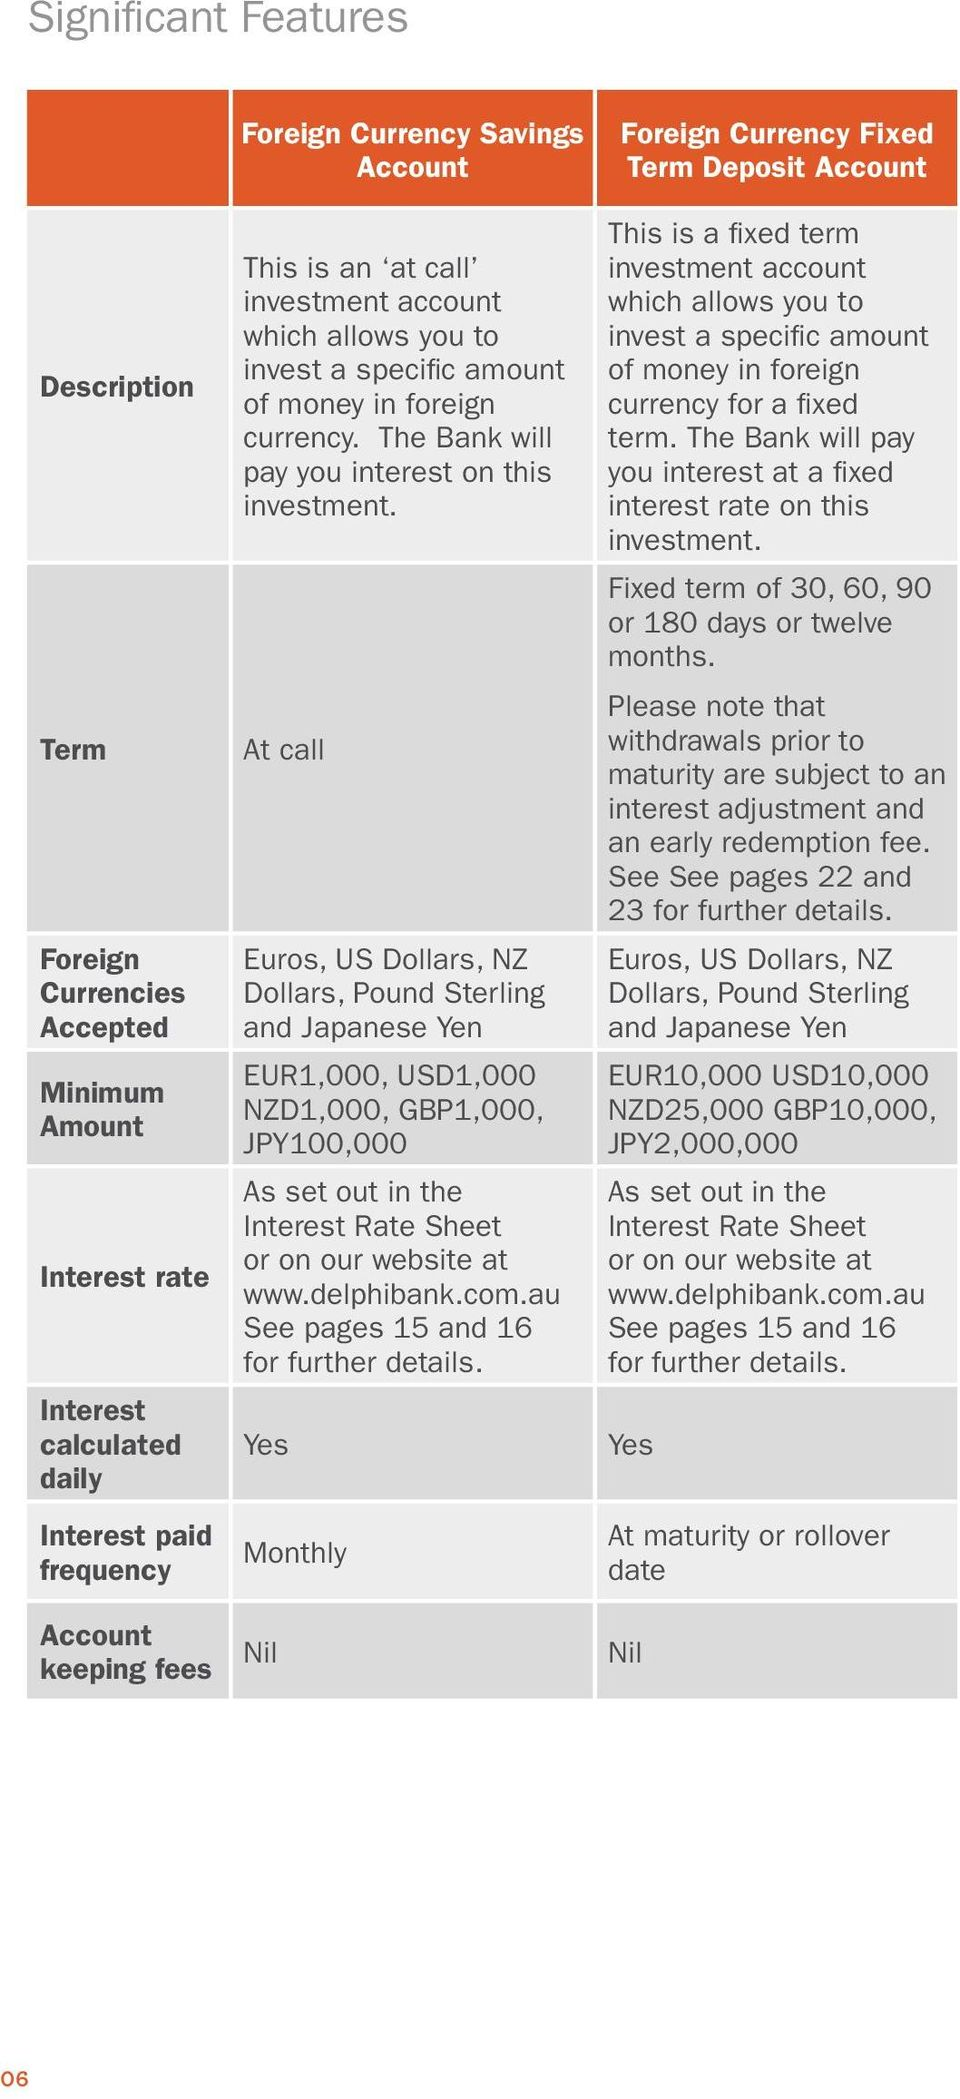 At call Euros, US Dollars, NZ Dollars, Pound Sterling and Japanese Yen EUR1,000, USD1,000 NZD1,000, GBP1,000, JPY100,000 As set out in the Interest Rate Sheet or on our website at www.delphibank.com.